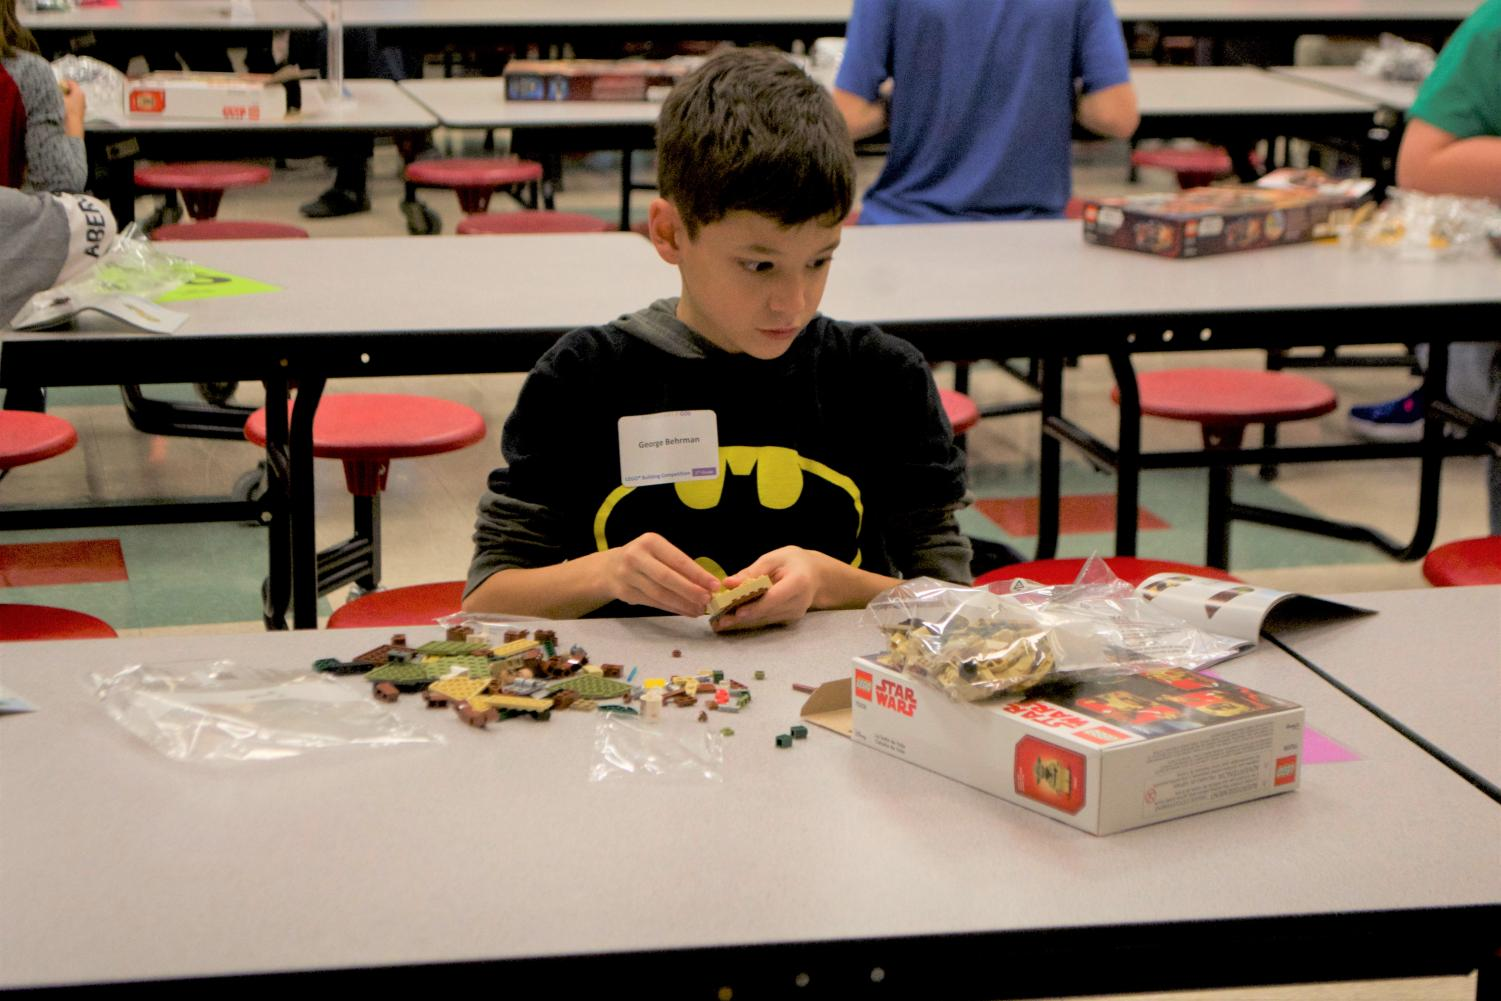 """The AES lego competition enables students to dive deep into their imaginations and relish in their creativity. Students can see tangible results of actualizing their imaginations. """"Lego has essentially taken the concrete block, the building block of the world, and made it into the building blocks of our imagination,"""" Ayah Bdeir said."""